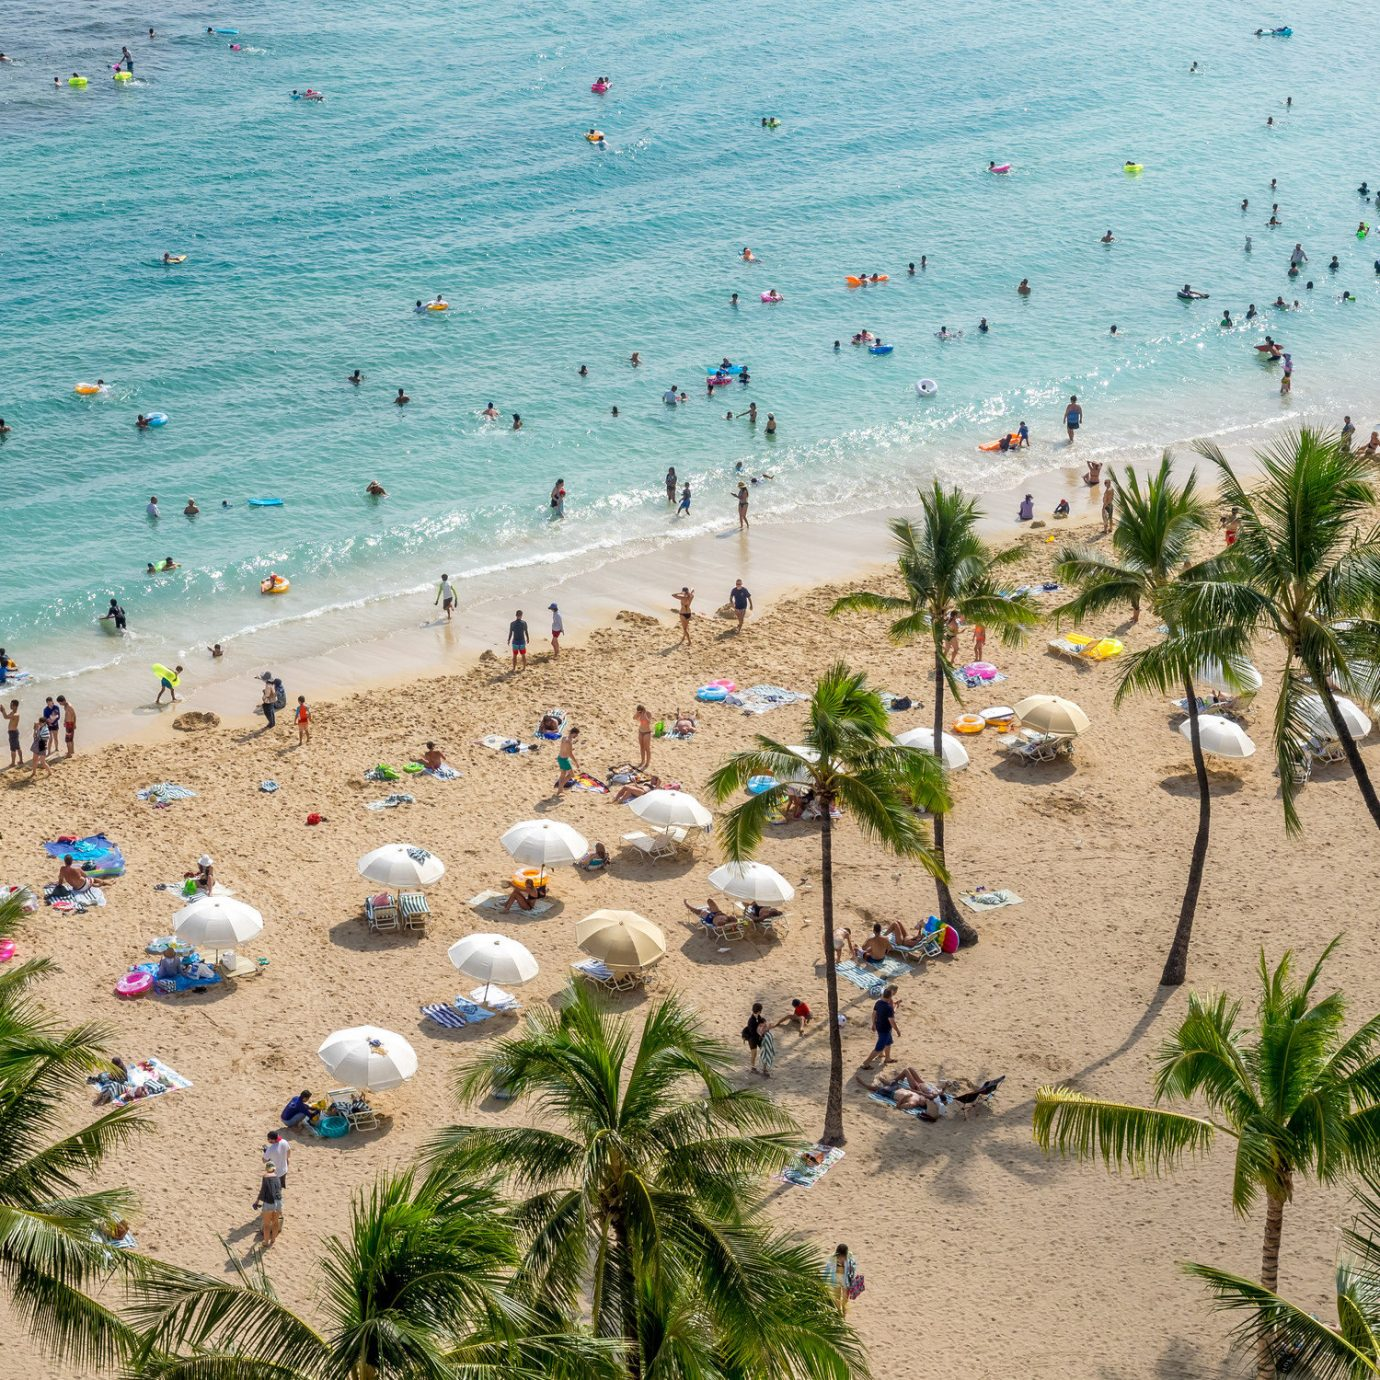 Arts + Culture Brooklyn Canada Hawaii Los Angeles Morocco New York Oahu Offbeat Scotland Style + Design Toronto outdoor ground Beach body of water Nature Sea shore palm vacation Ocean people Coast arecales sand tropics sandy bay caribbean Resort lined gathered day